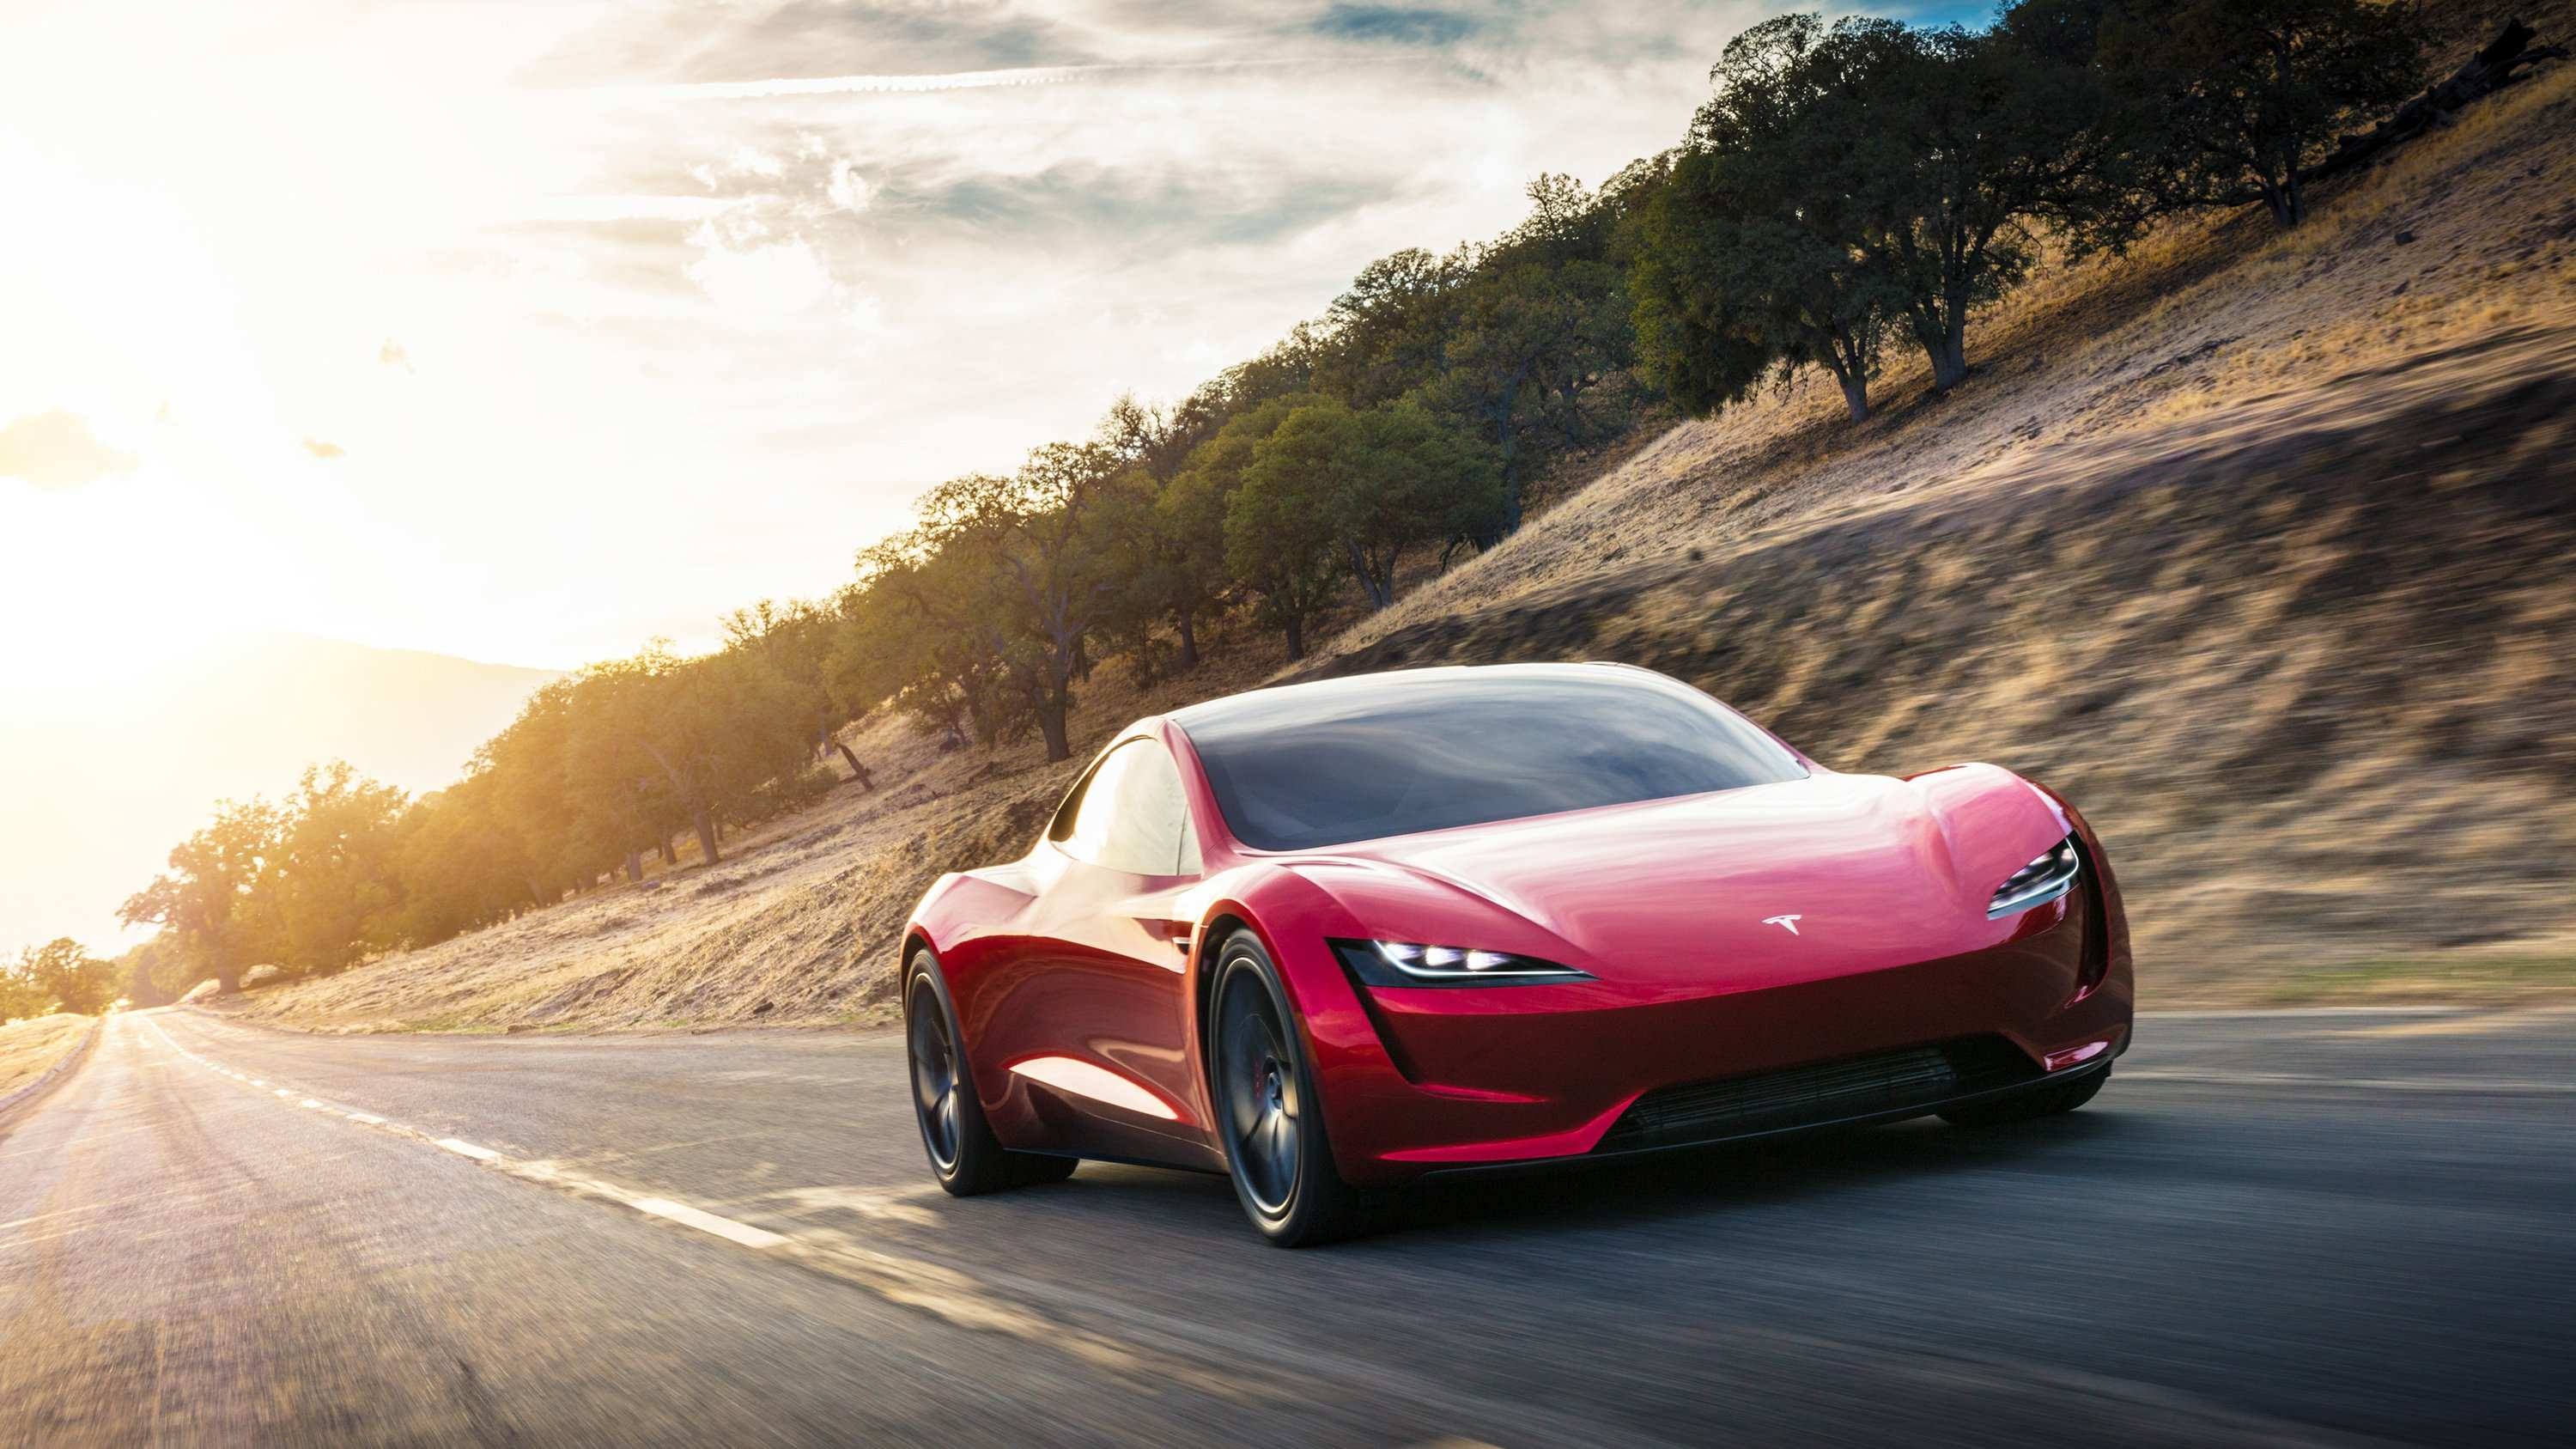 35 Great 2020 Tesla Roadster Weight 3 History by 2020 Tesla Roadster Weight 3